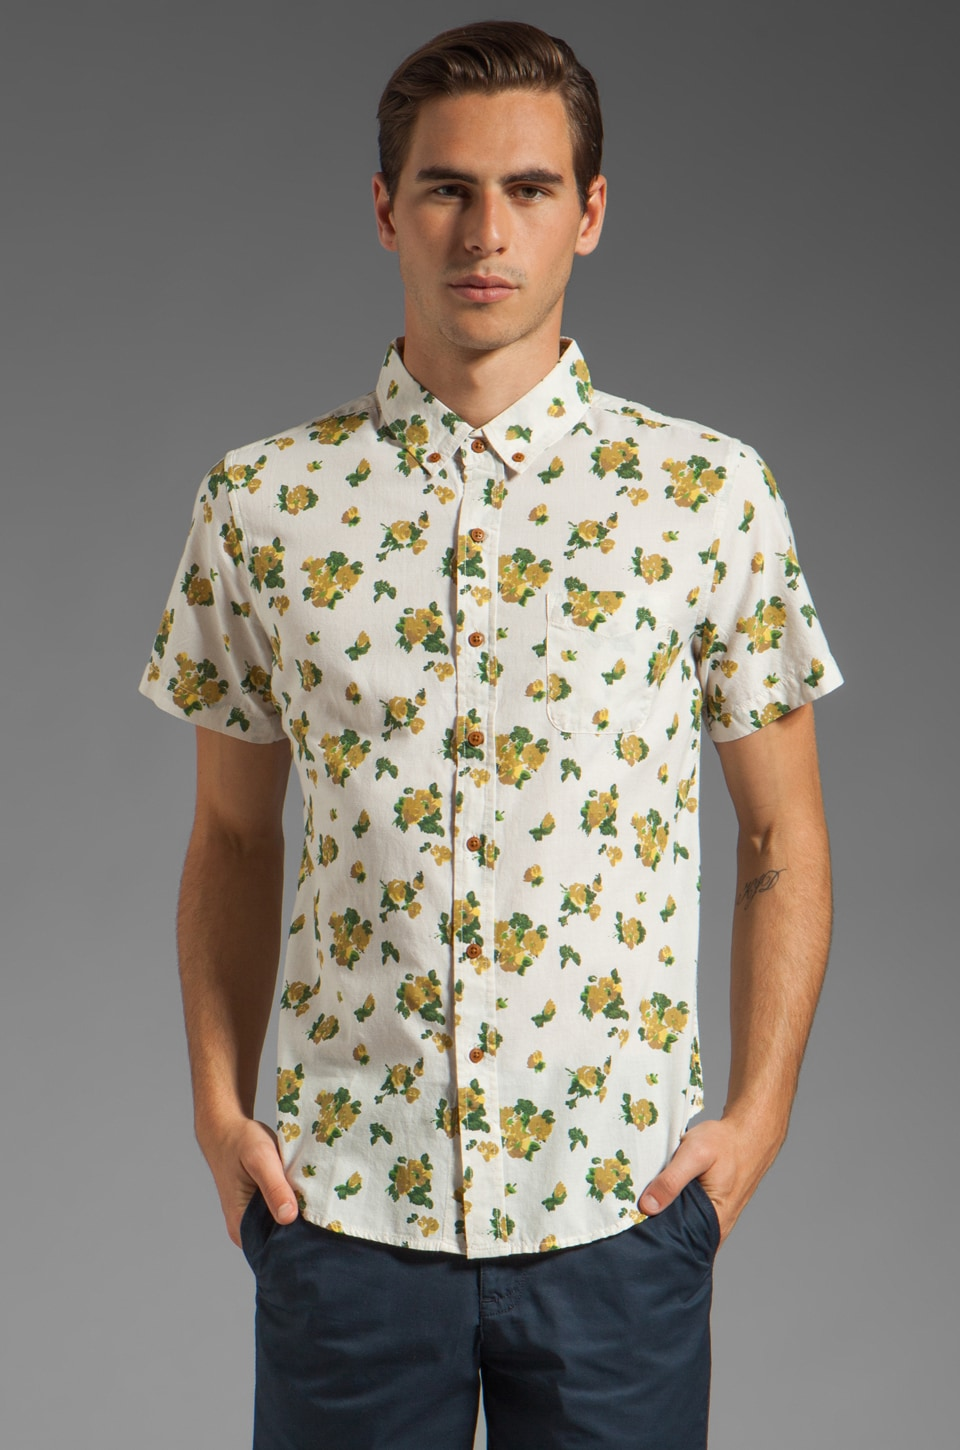 Obey Low End Short Sleeve Shirt in Oatmeal